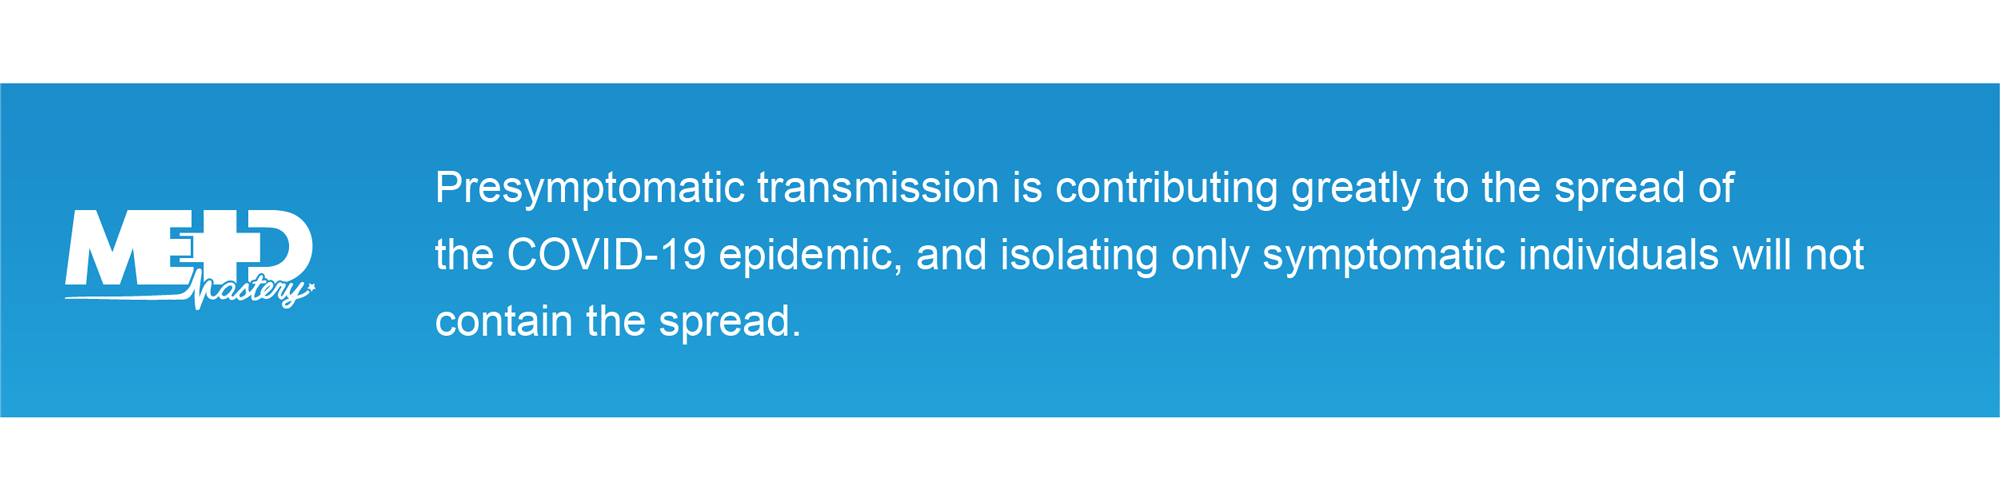 Note stating the importance of presymptomatic transmission in COVID19.